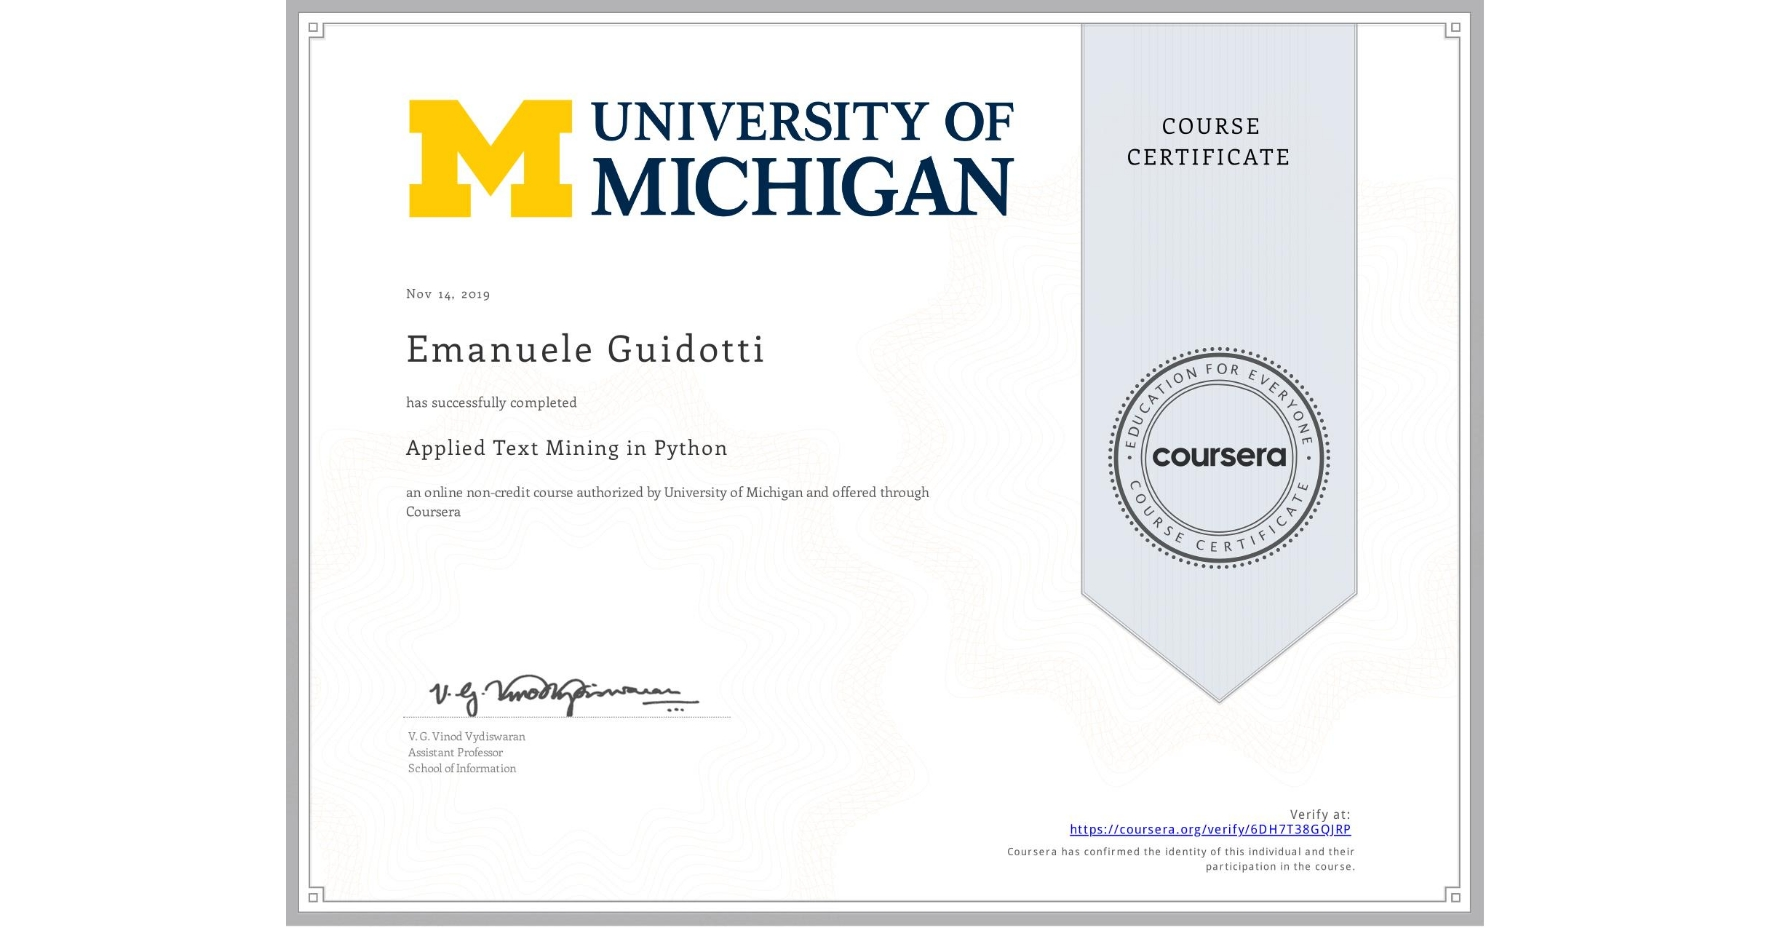 View certificate for Emanuele Guidotti, Applied Text Mining in Python, an online non-credit course authorized by University of Michigan and offered through Coursera